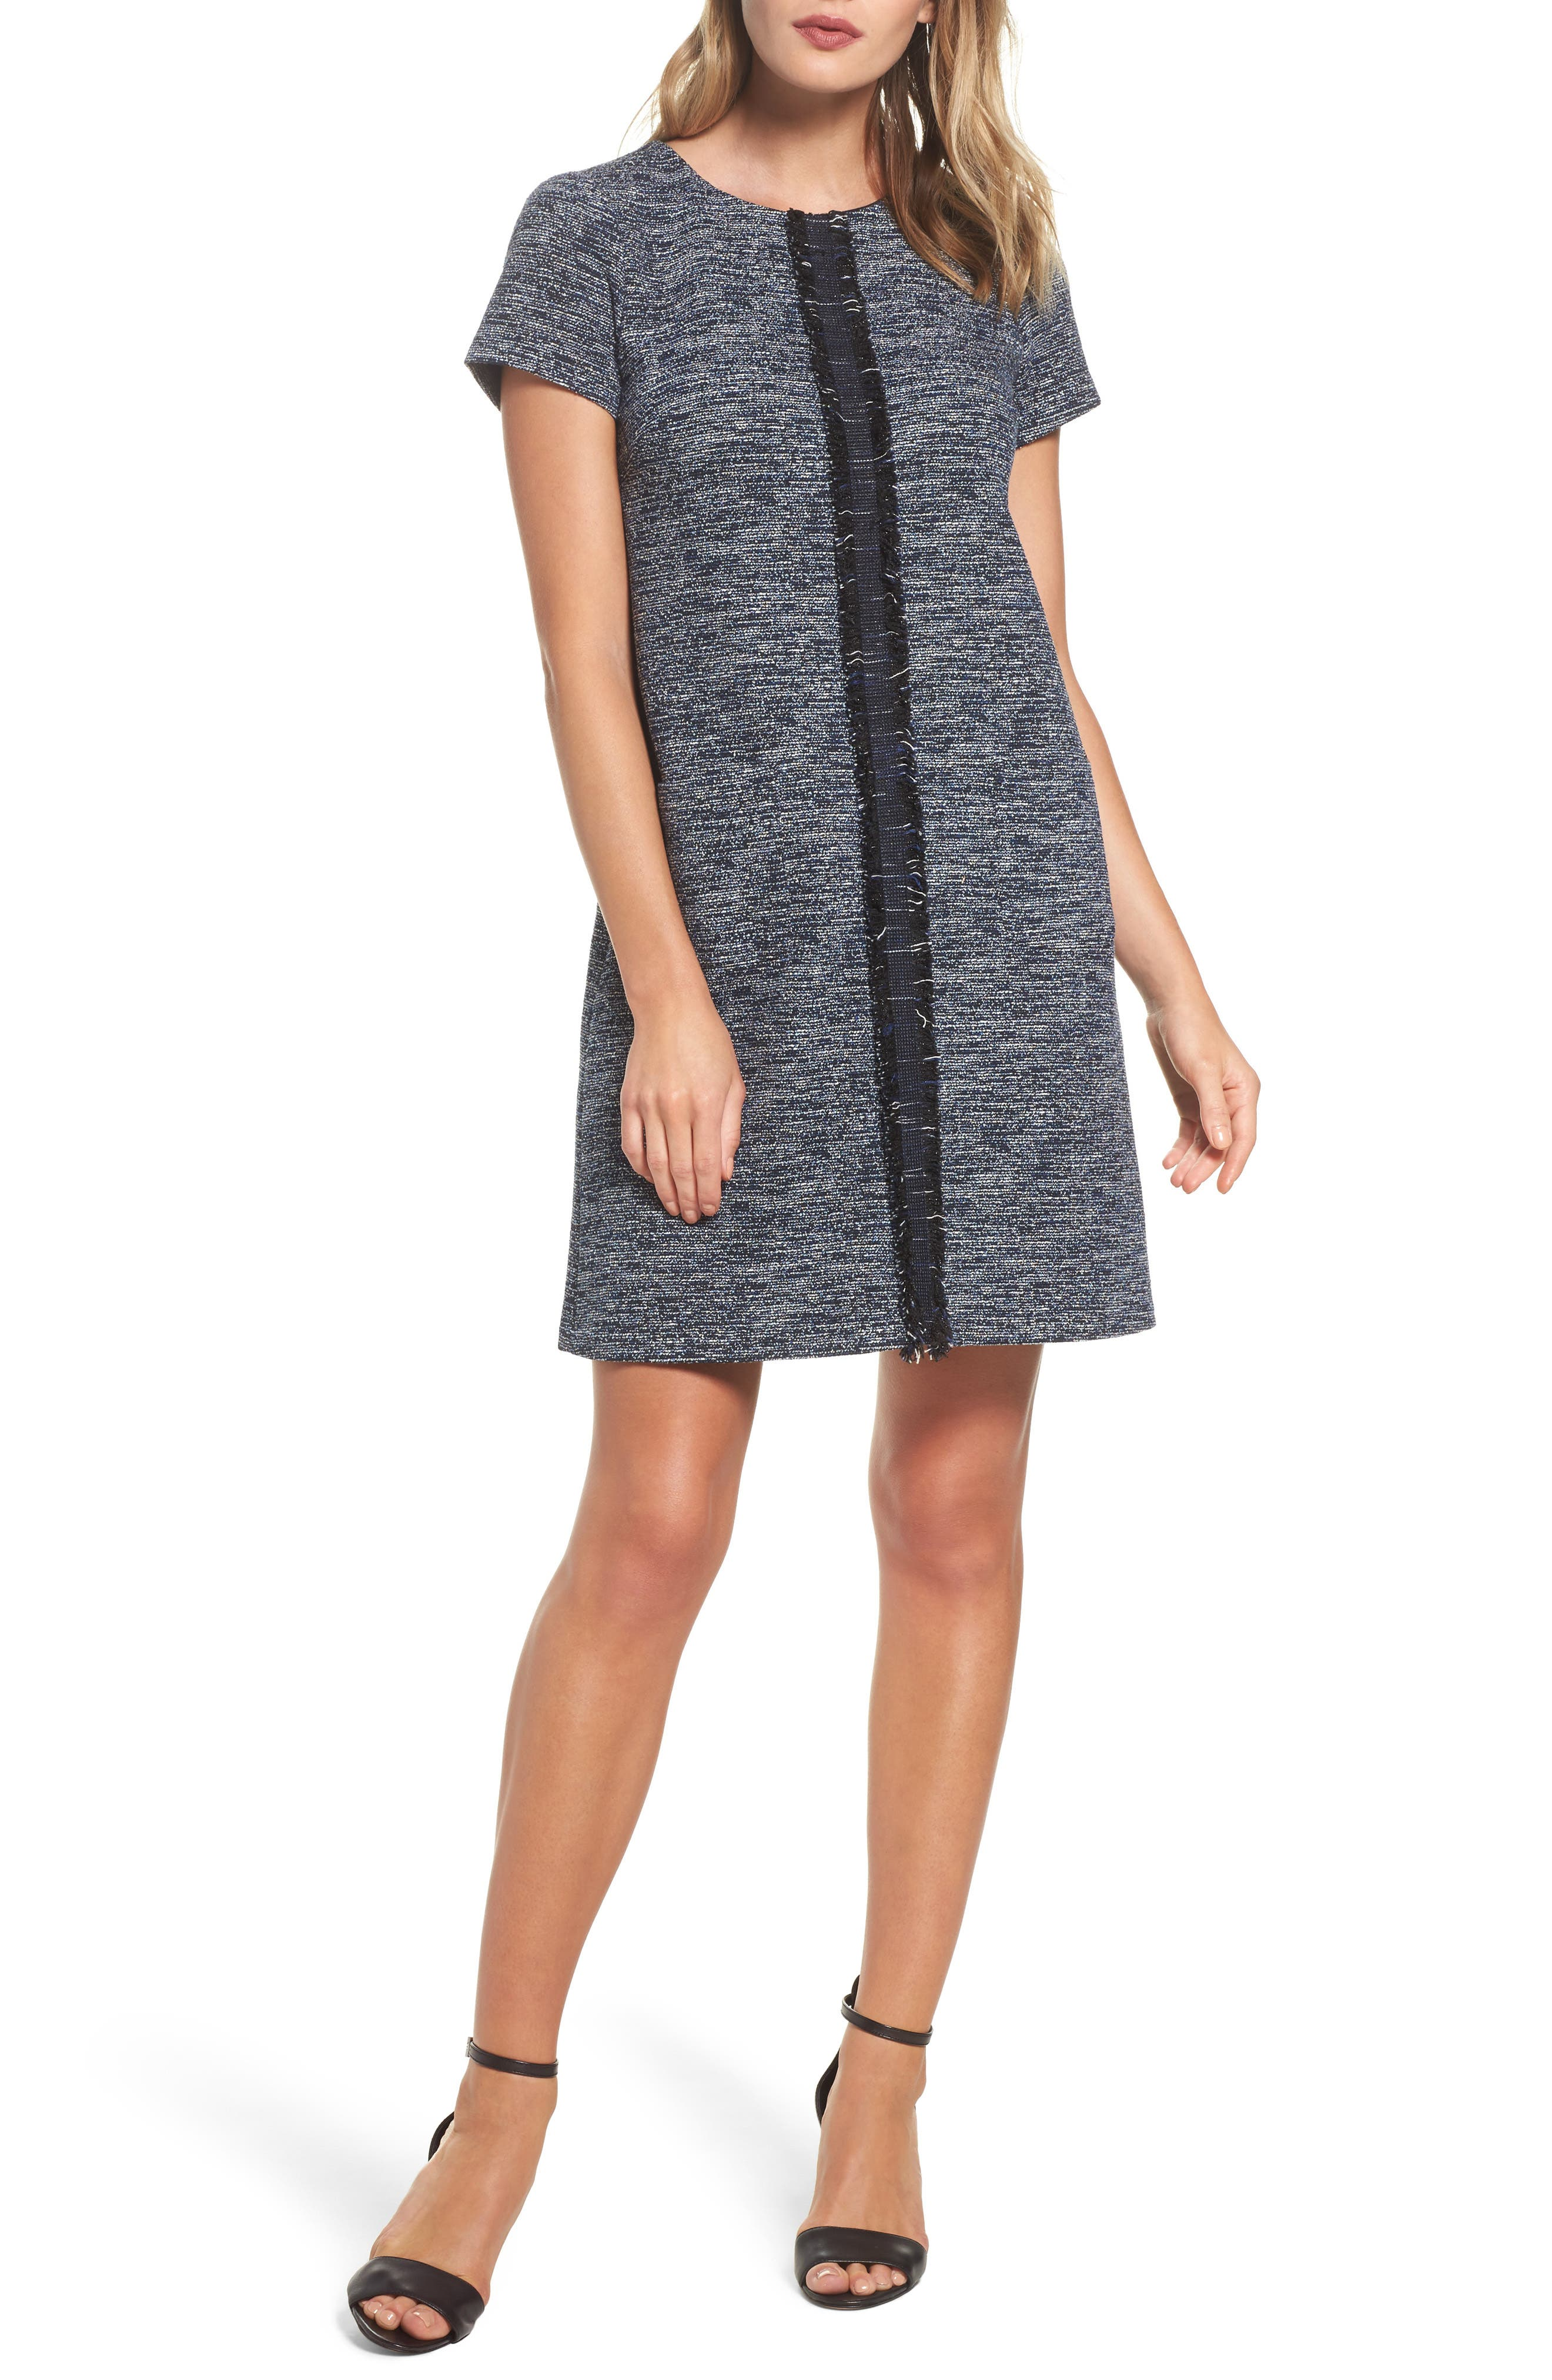 Alternate Image 1 Selected - Adrianna Papell Knit Tweed Shift Dress